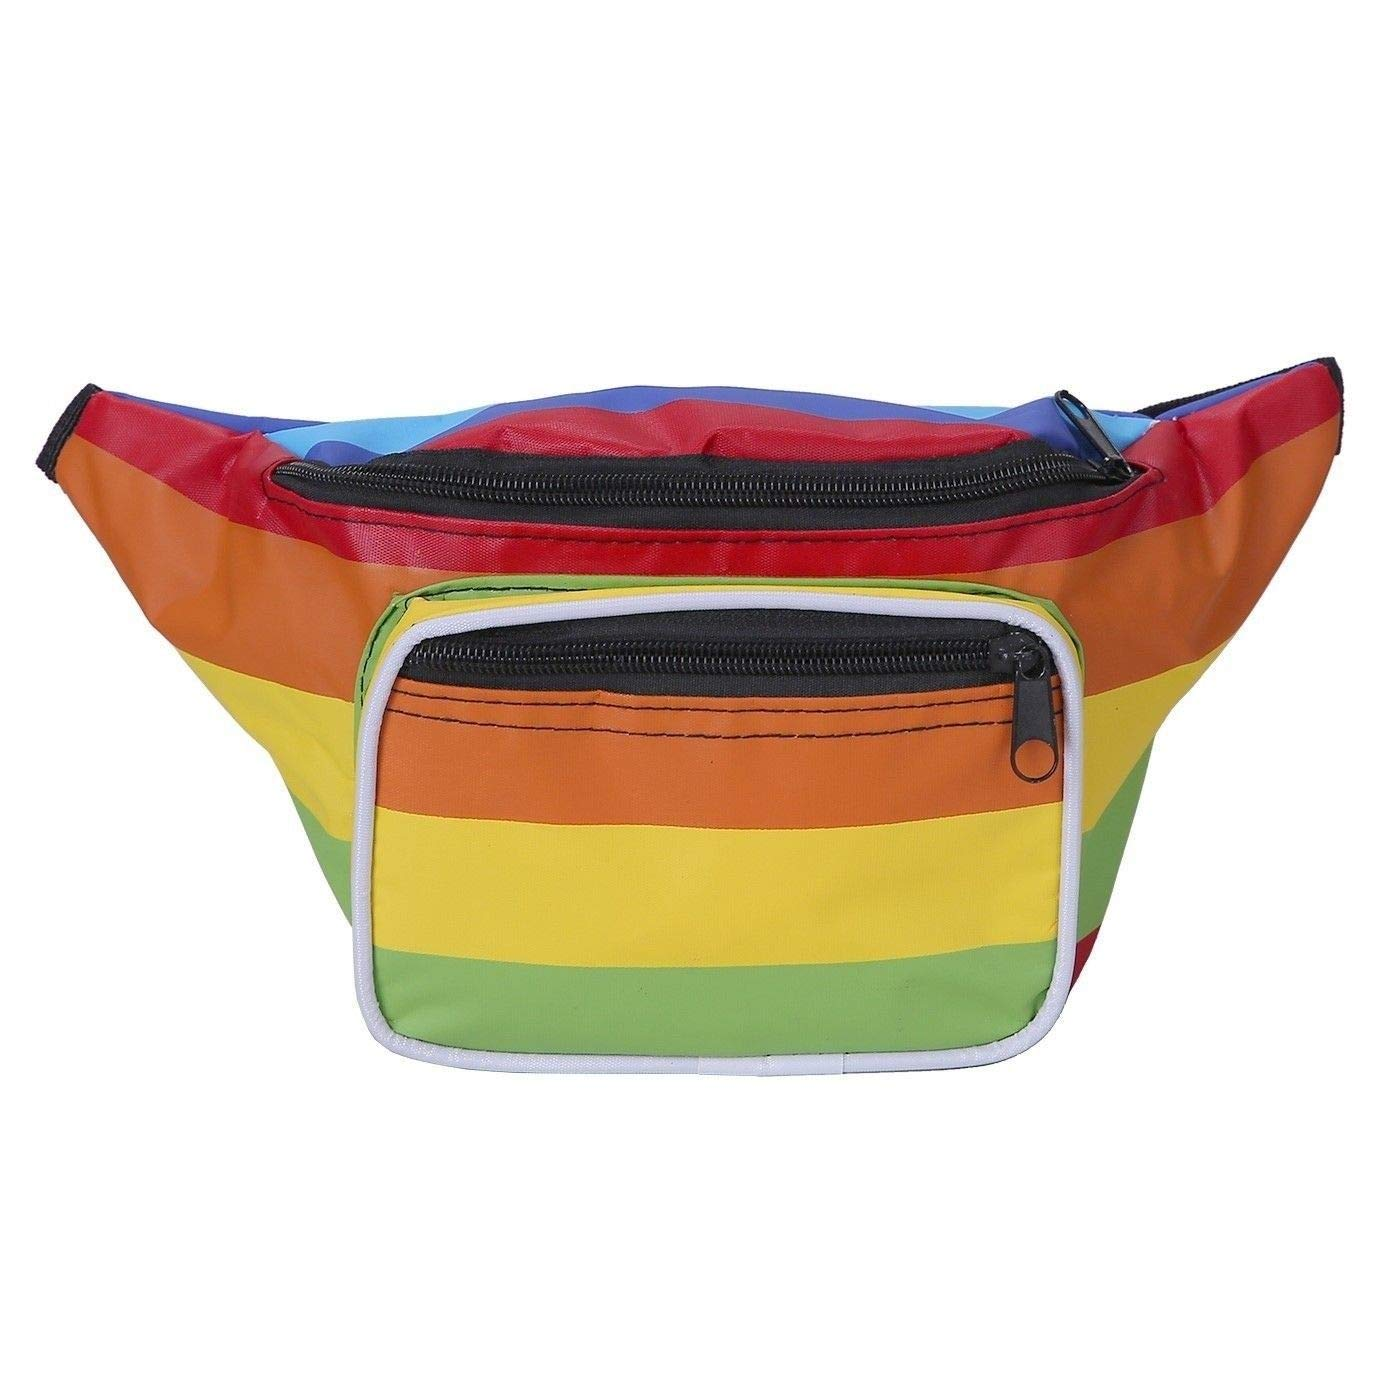 476ce07c66ac Cheap Travel Hip Pack, find Travel Hip Pack deals on line at Alibaba.com